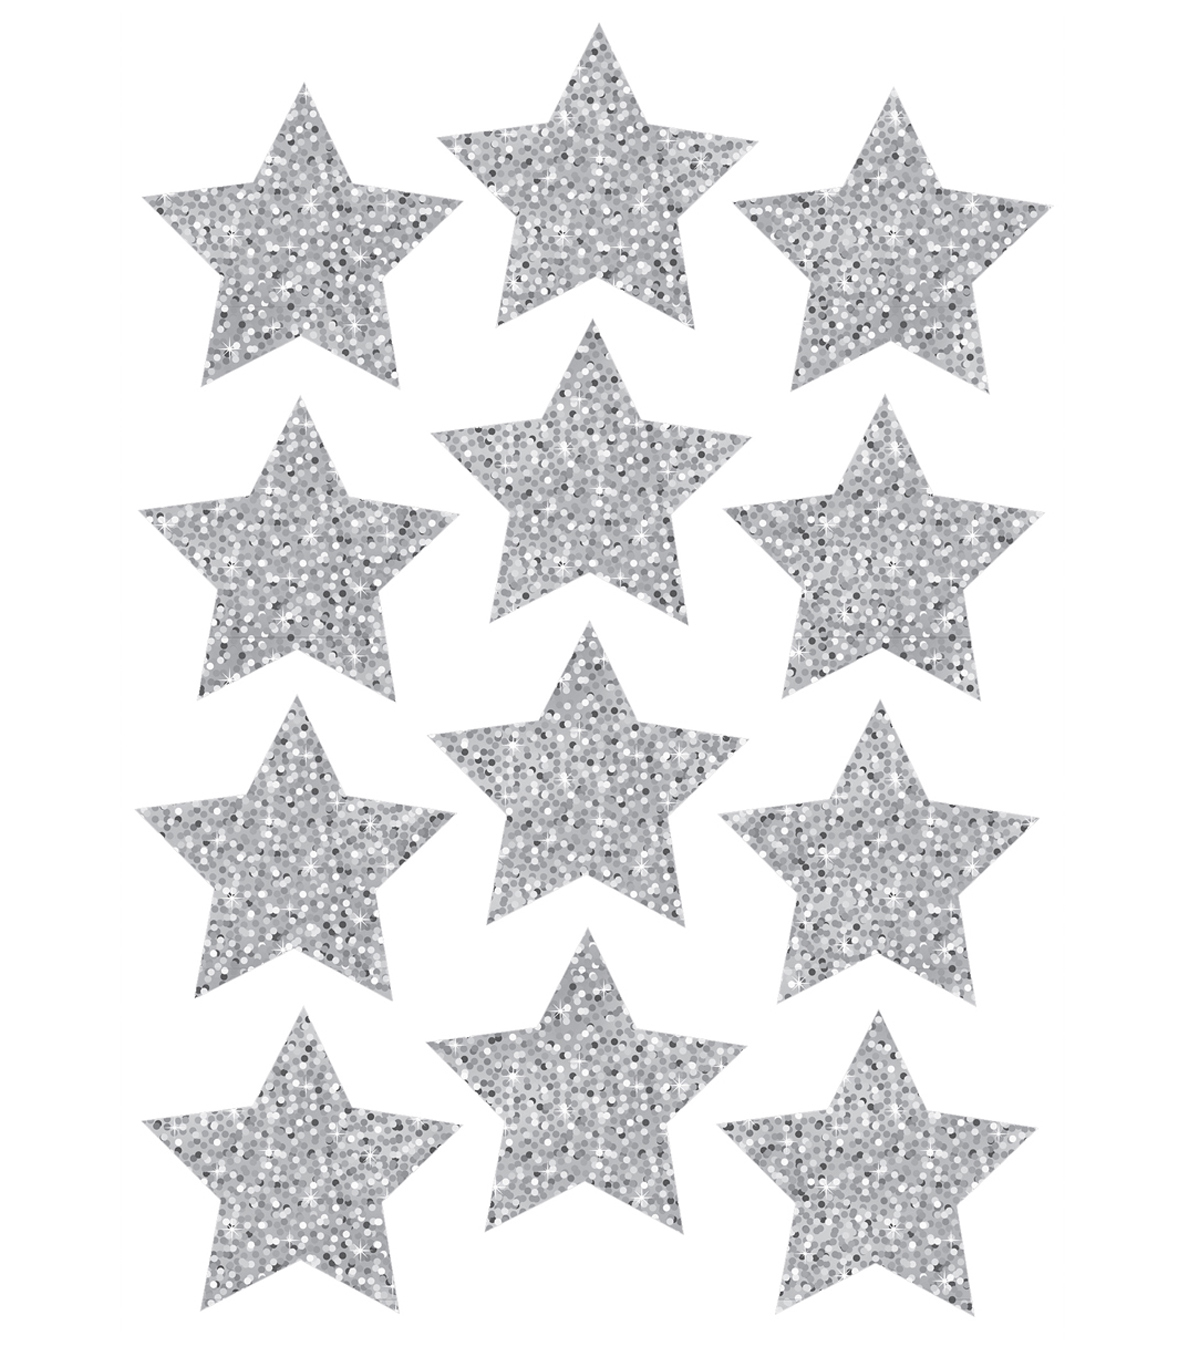 Die-Cut Magnets, 3\u0022 Silver Sparkle Stars, 12pcs/pk, Set of 6pks